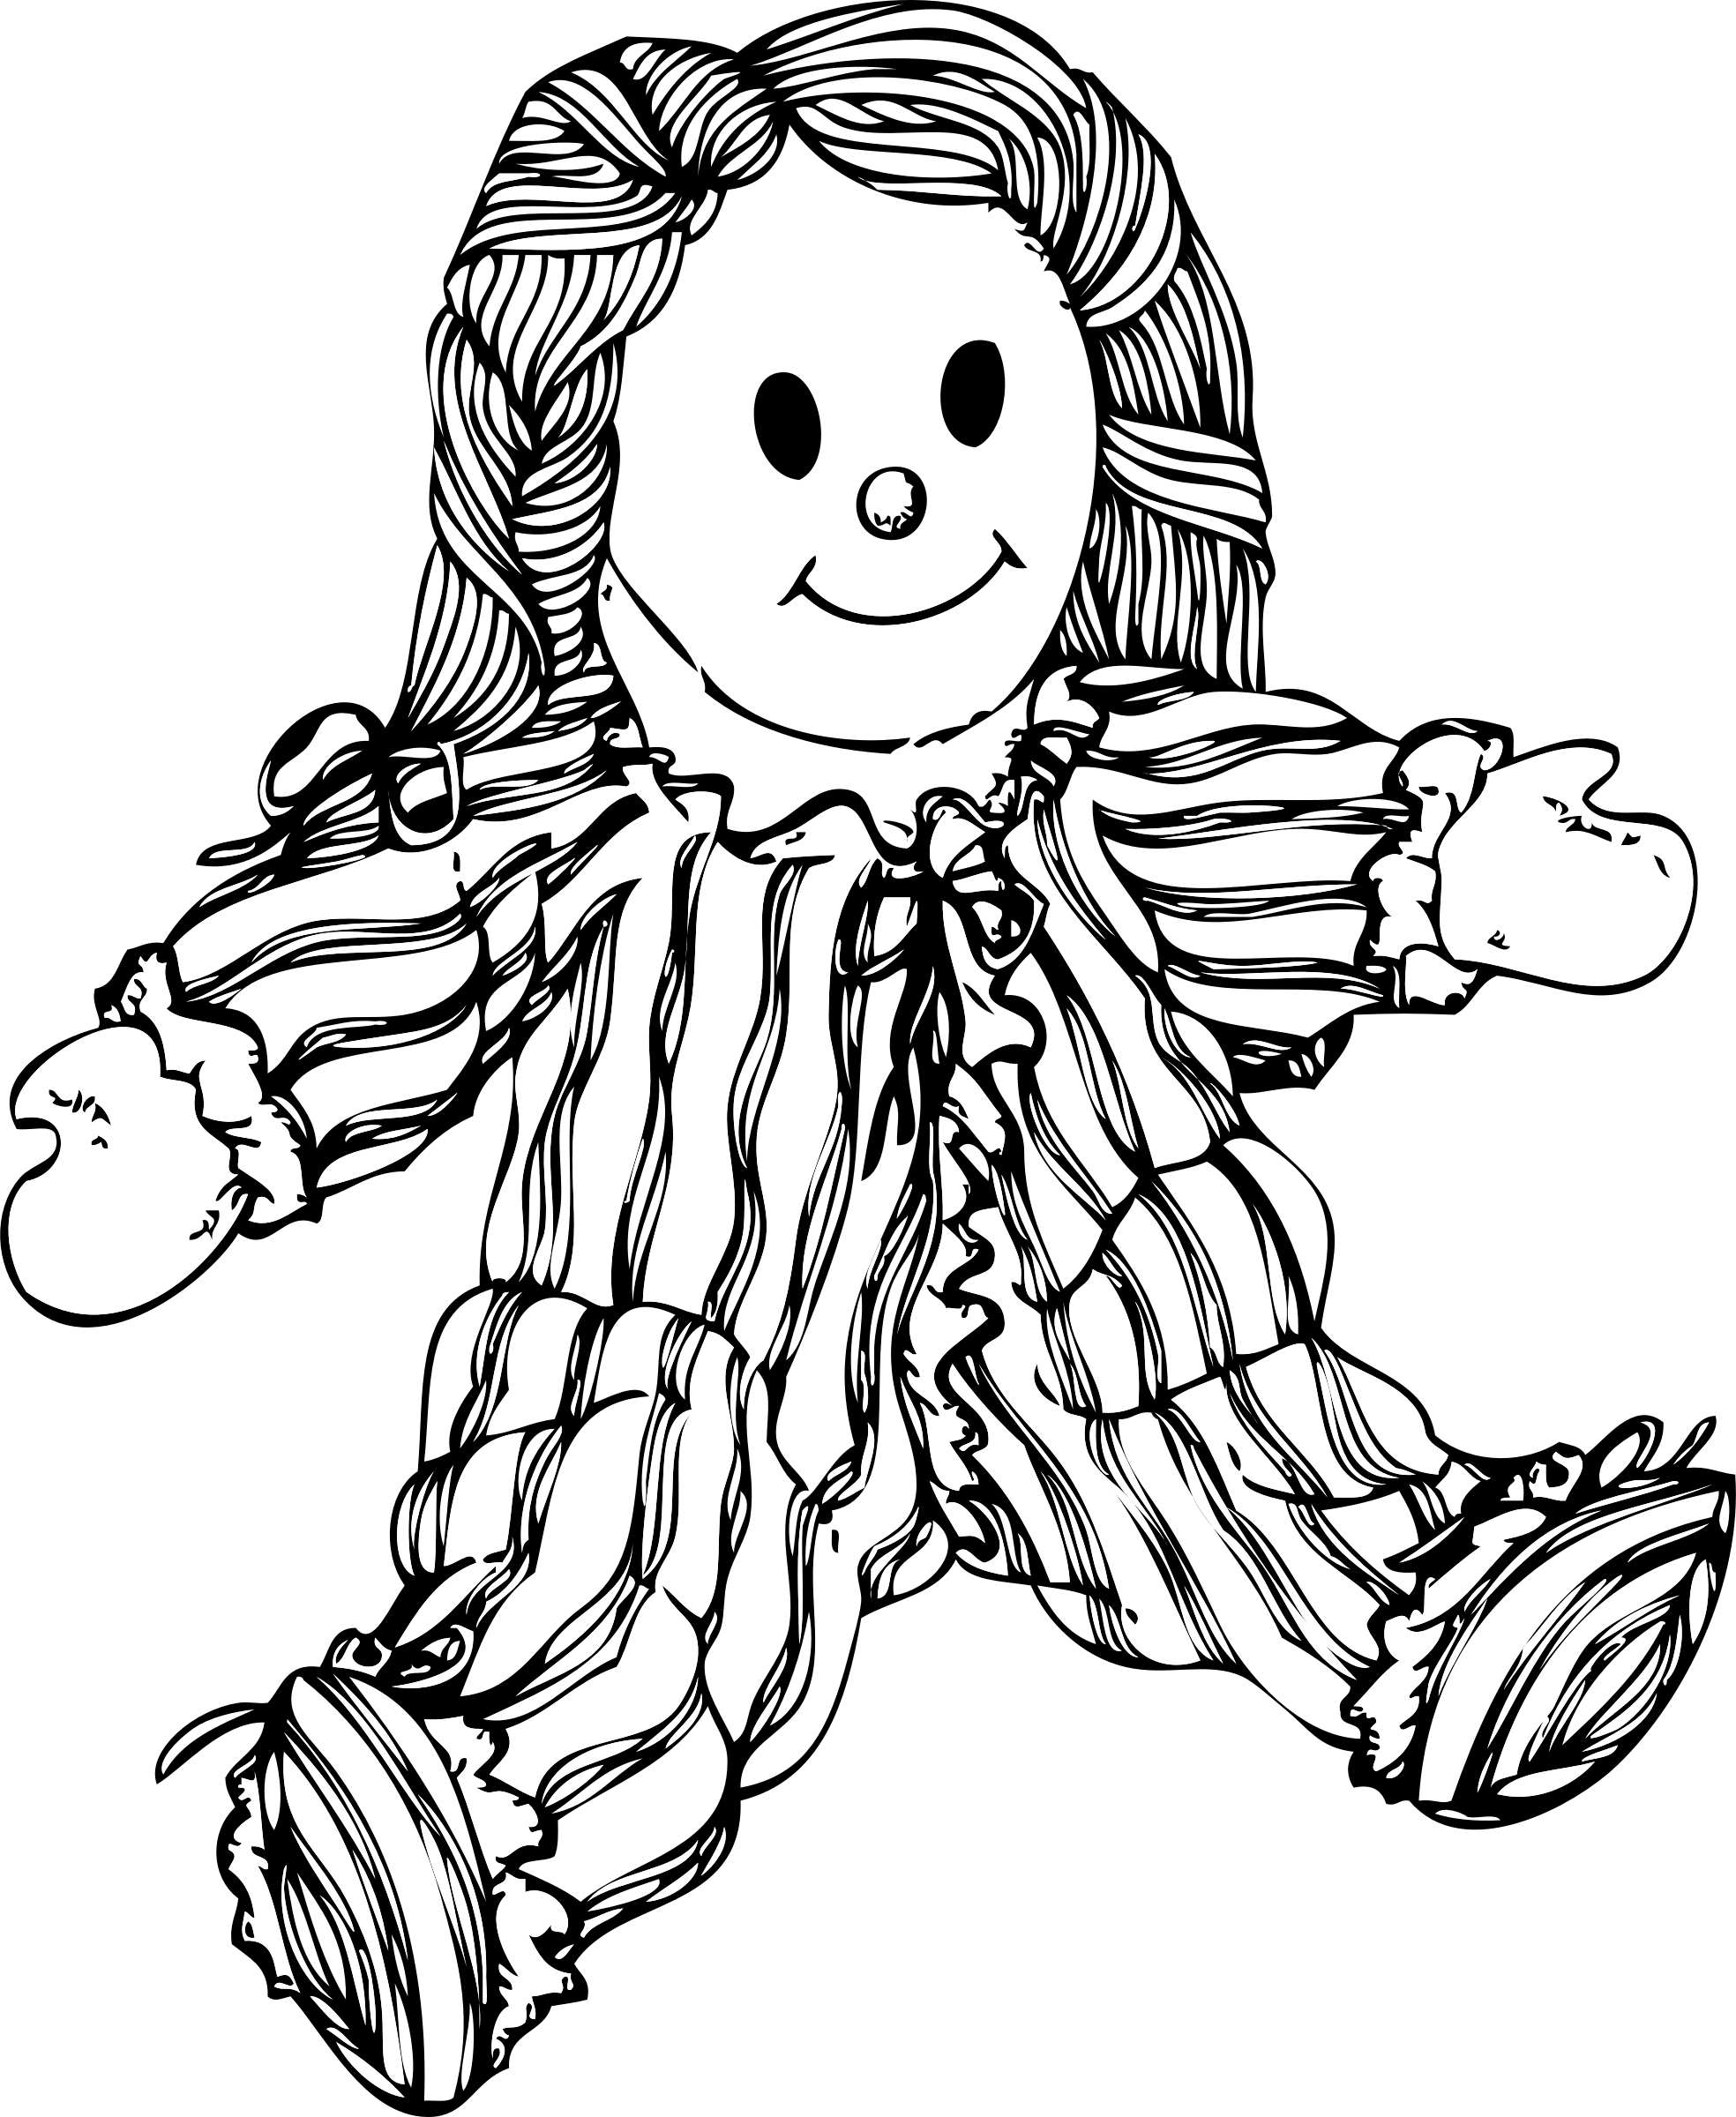 Stuffed big image png. Coloring clipart doll